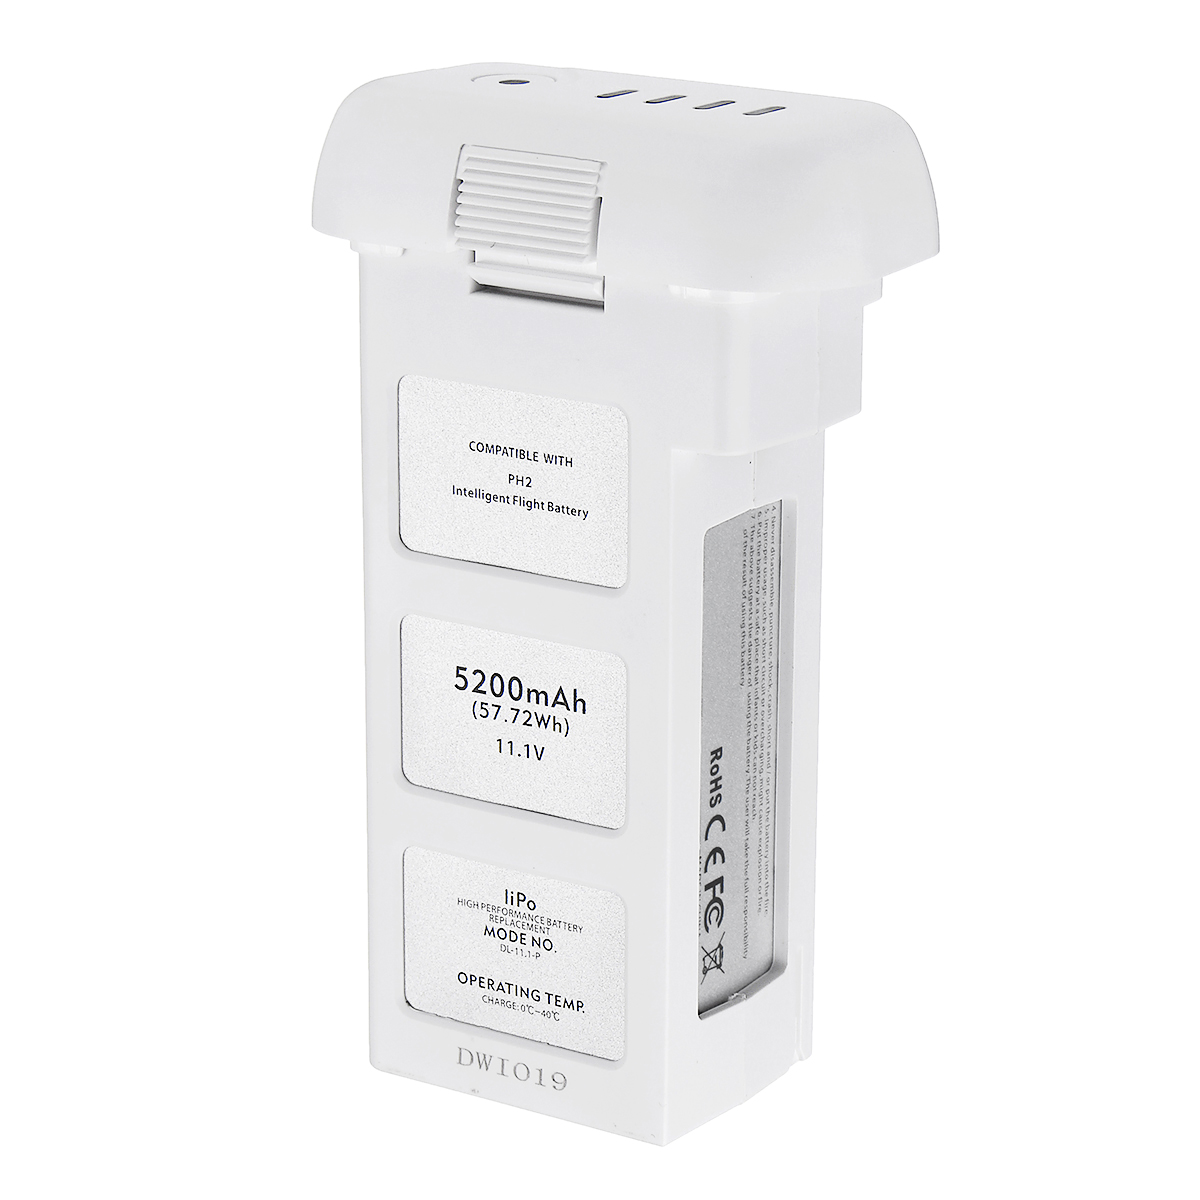 5200mA véritable batterie de vol intelligente DJI Phantom 2 3 15.2 V, LiPo 4 S 856678 P batterie de Drone électronique grand public 2019 nouveau - 3